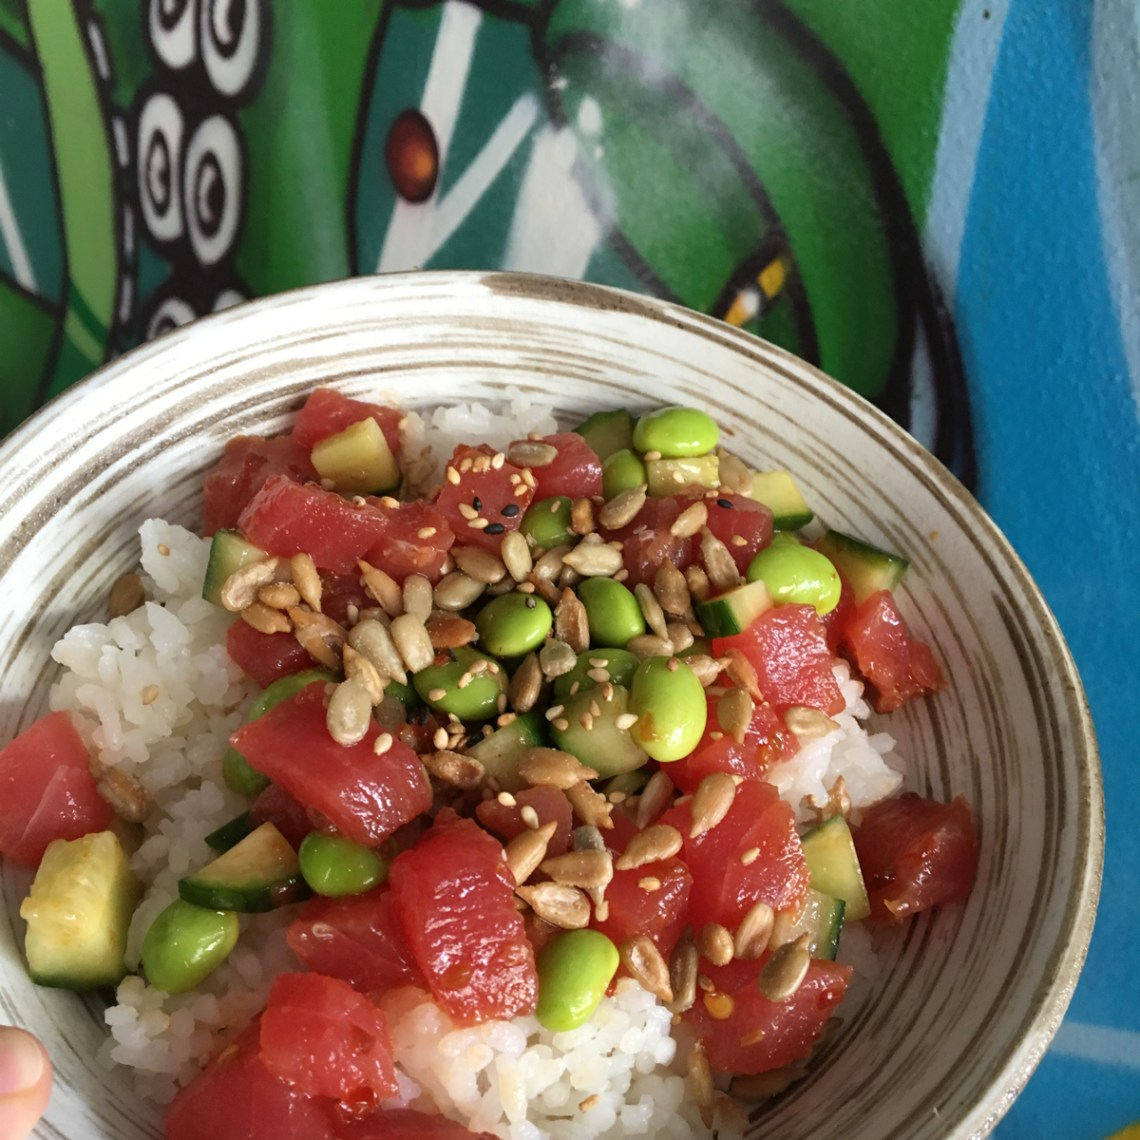 Sushi Maki is a great lunch option for sushi  in Coral Gables near Miami, Florida.